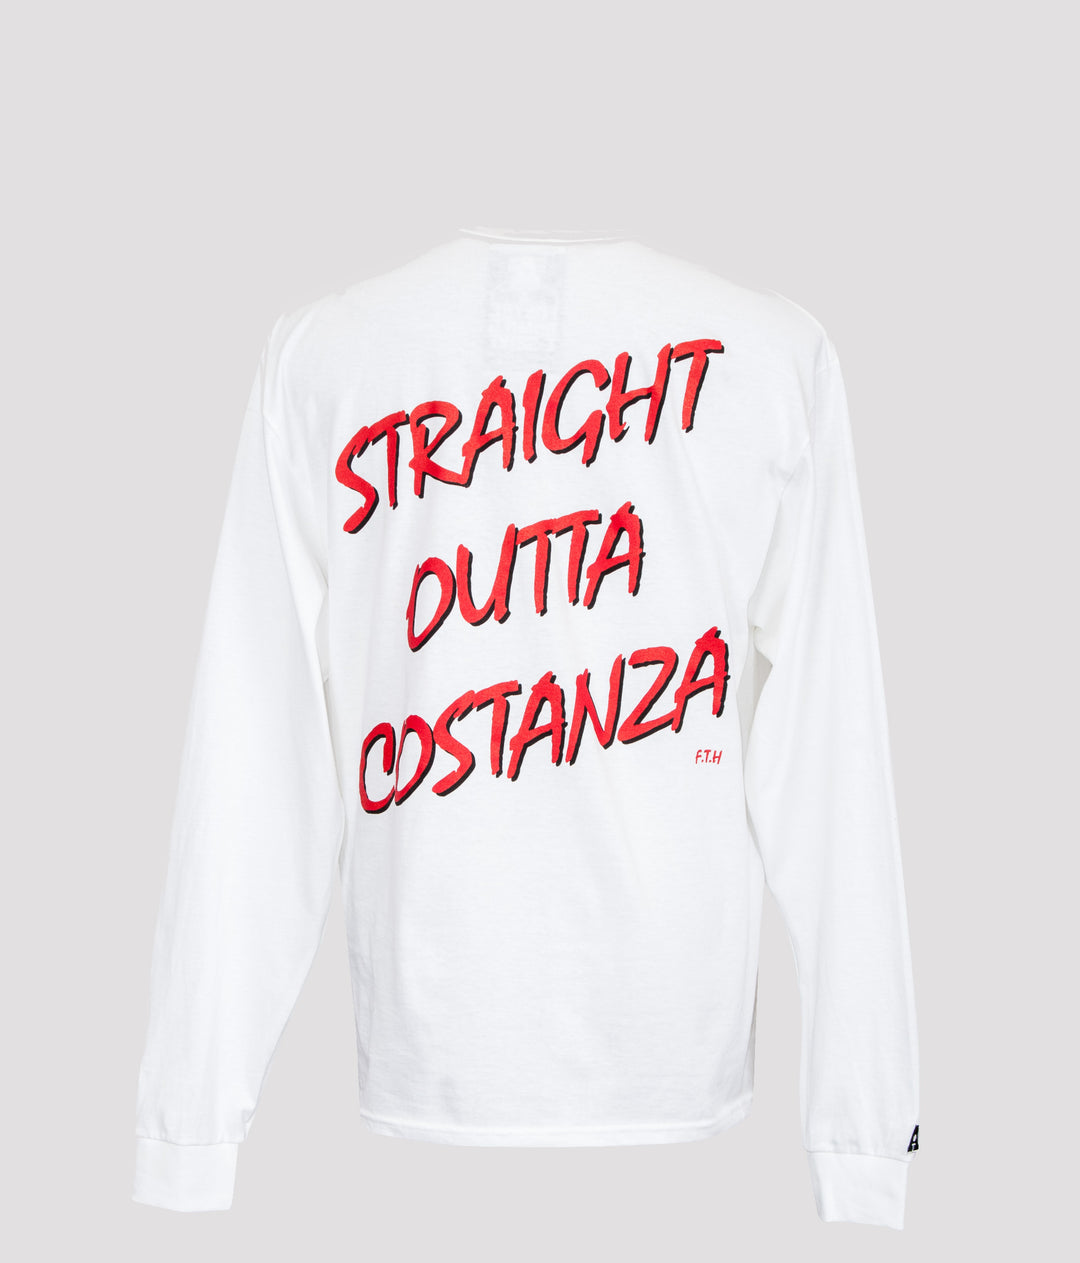 STRAIGHT OUTTA Longsleeve t-shirt